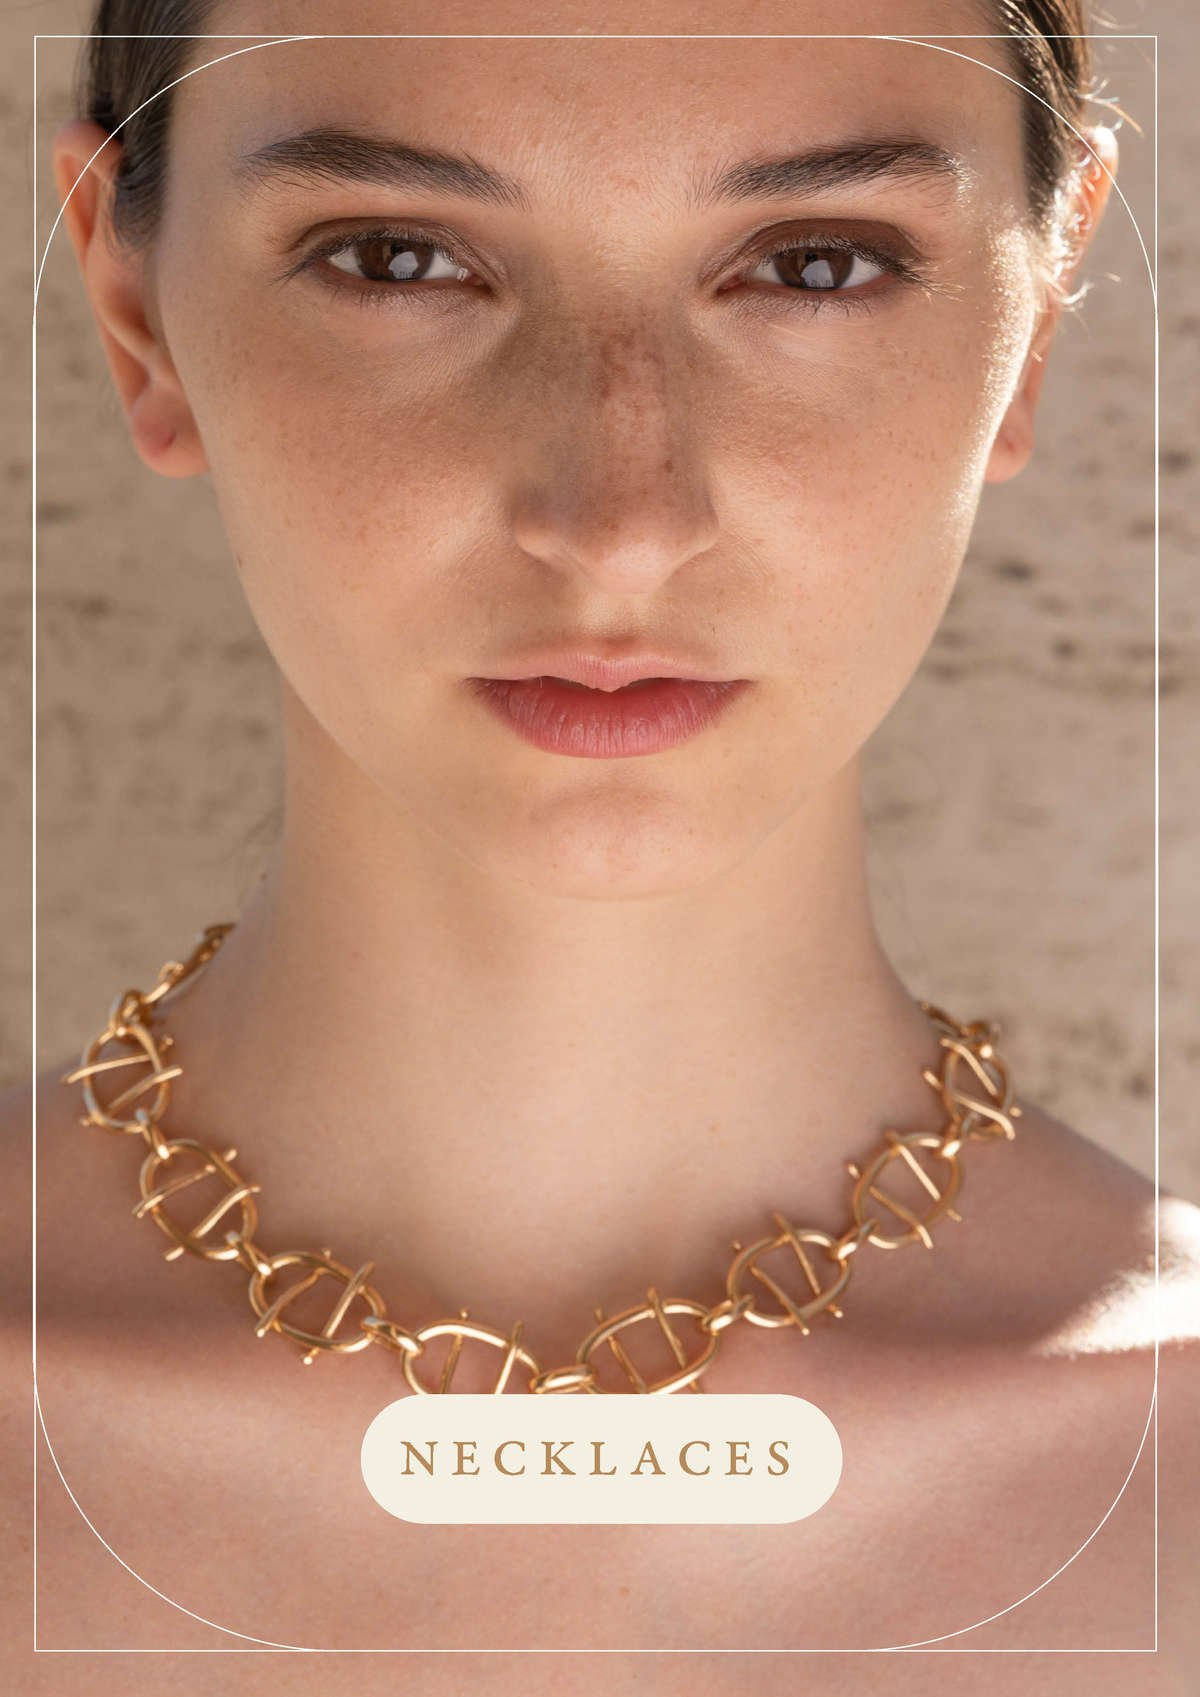 Jewelry Collection Signum | Necklaces handmade by Giulia Barela